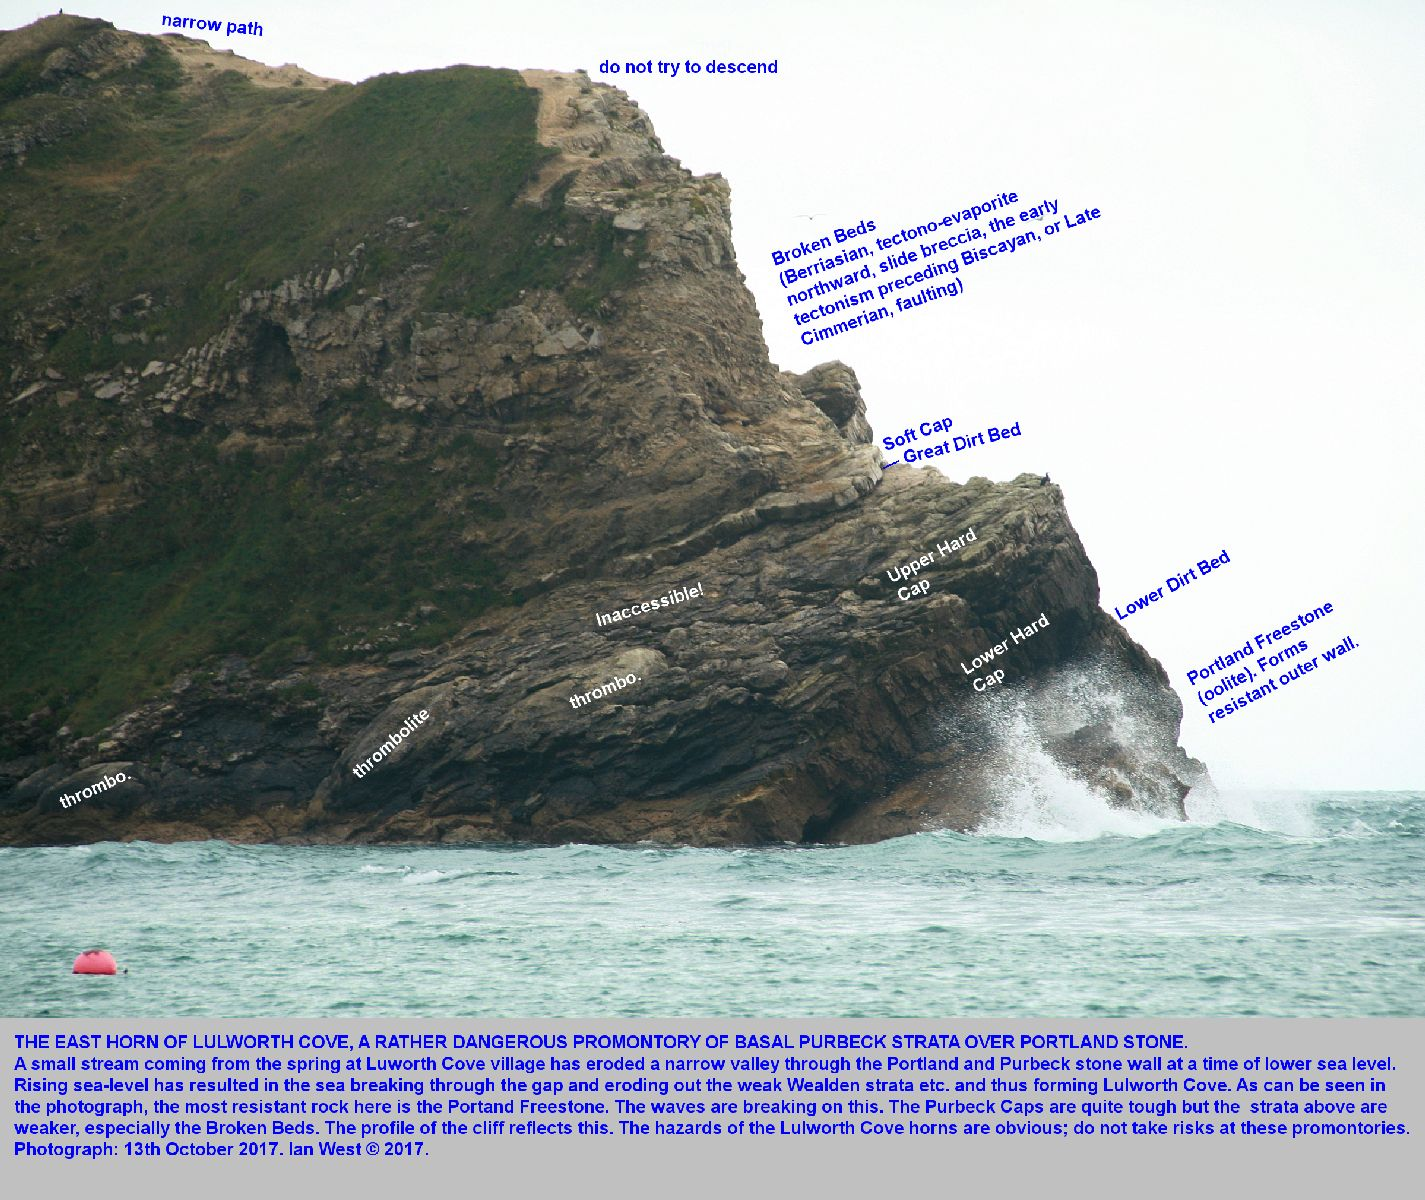 The East Horn of Lulworth Cove, Dorset, showing Purbeck Caps and Broken Beds above Portland Stone, 13th October, 2017